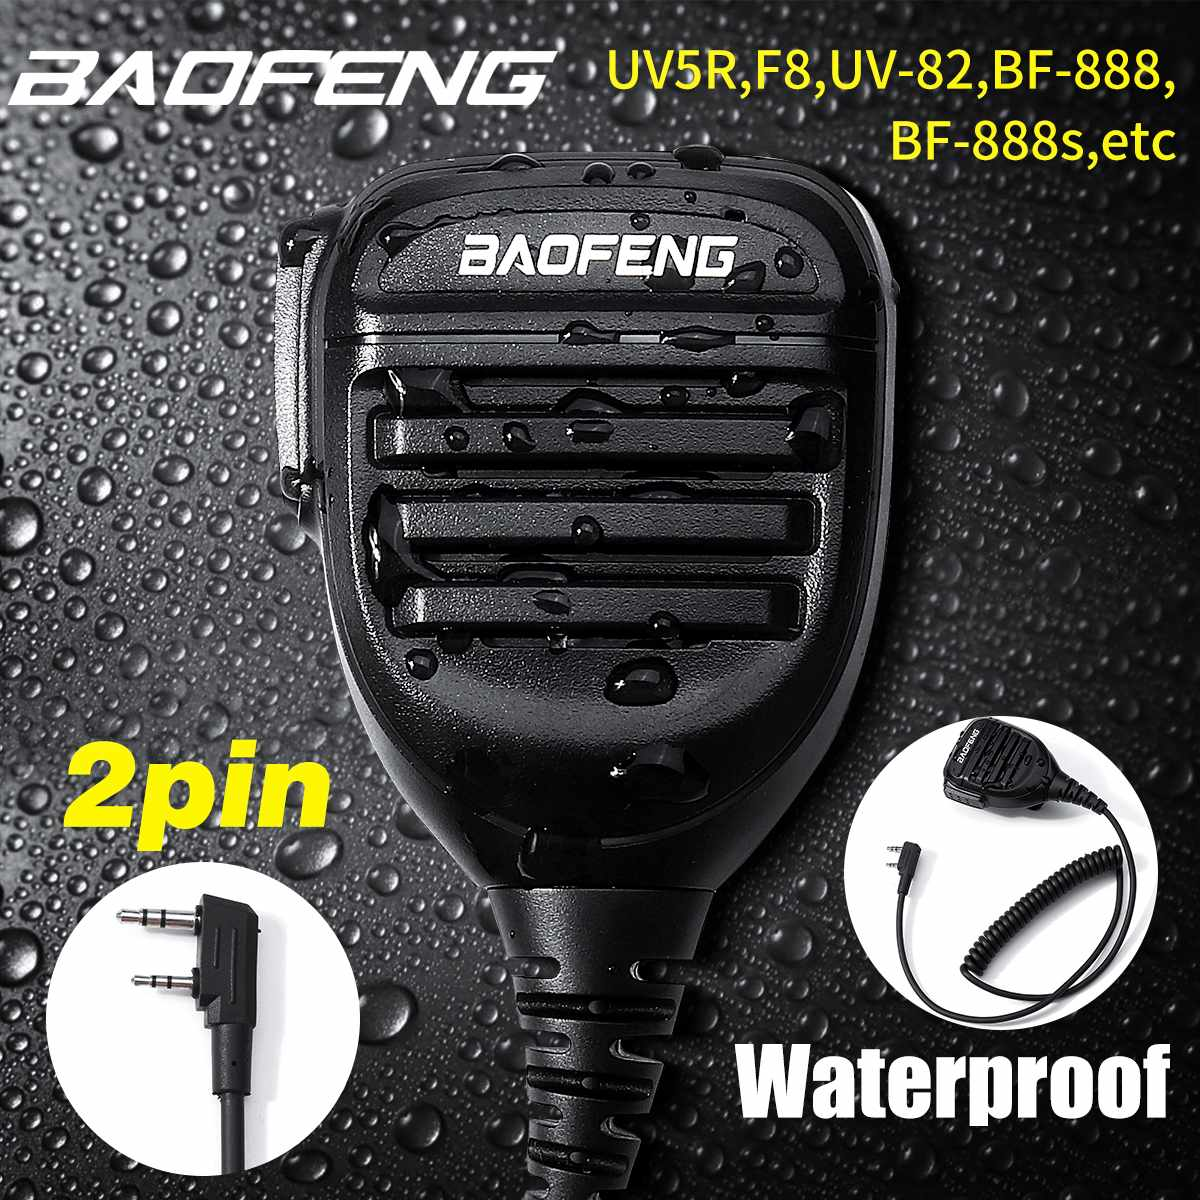 New 2020 BaoFeng 2 Pin Waterproof Handheld Microphone Speaker Mic For Baofeng Walkie Talkie UV5R,UV-82,DM-5R Plus,BF-888s Radio